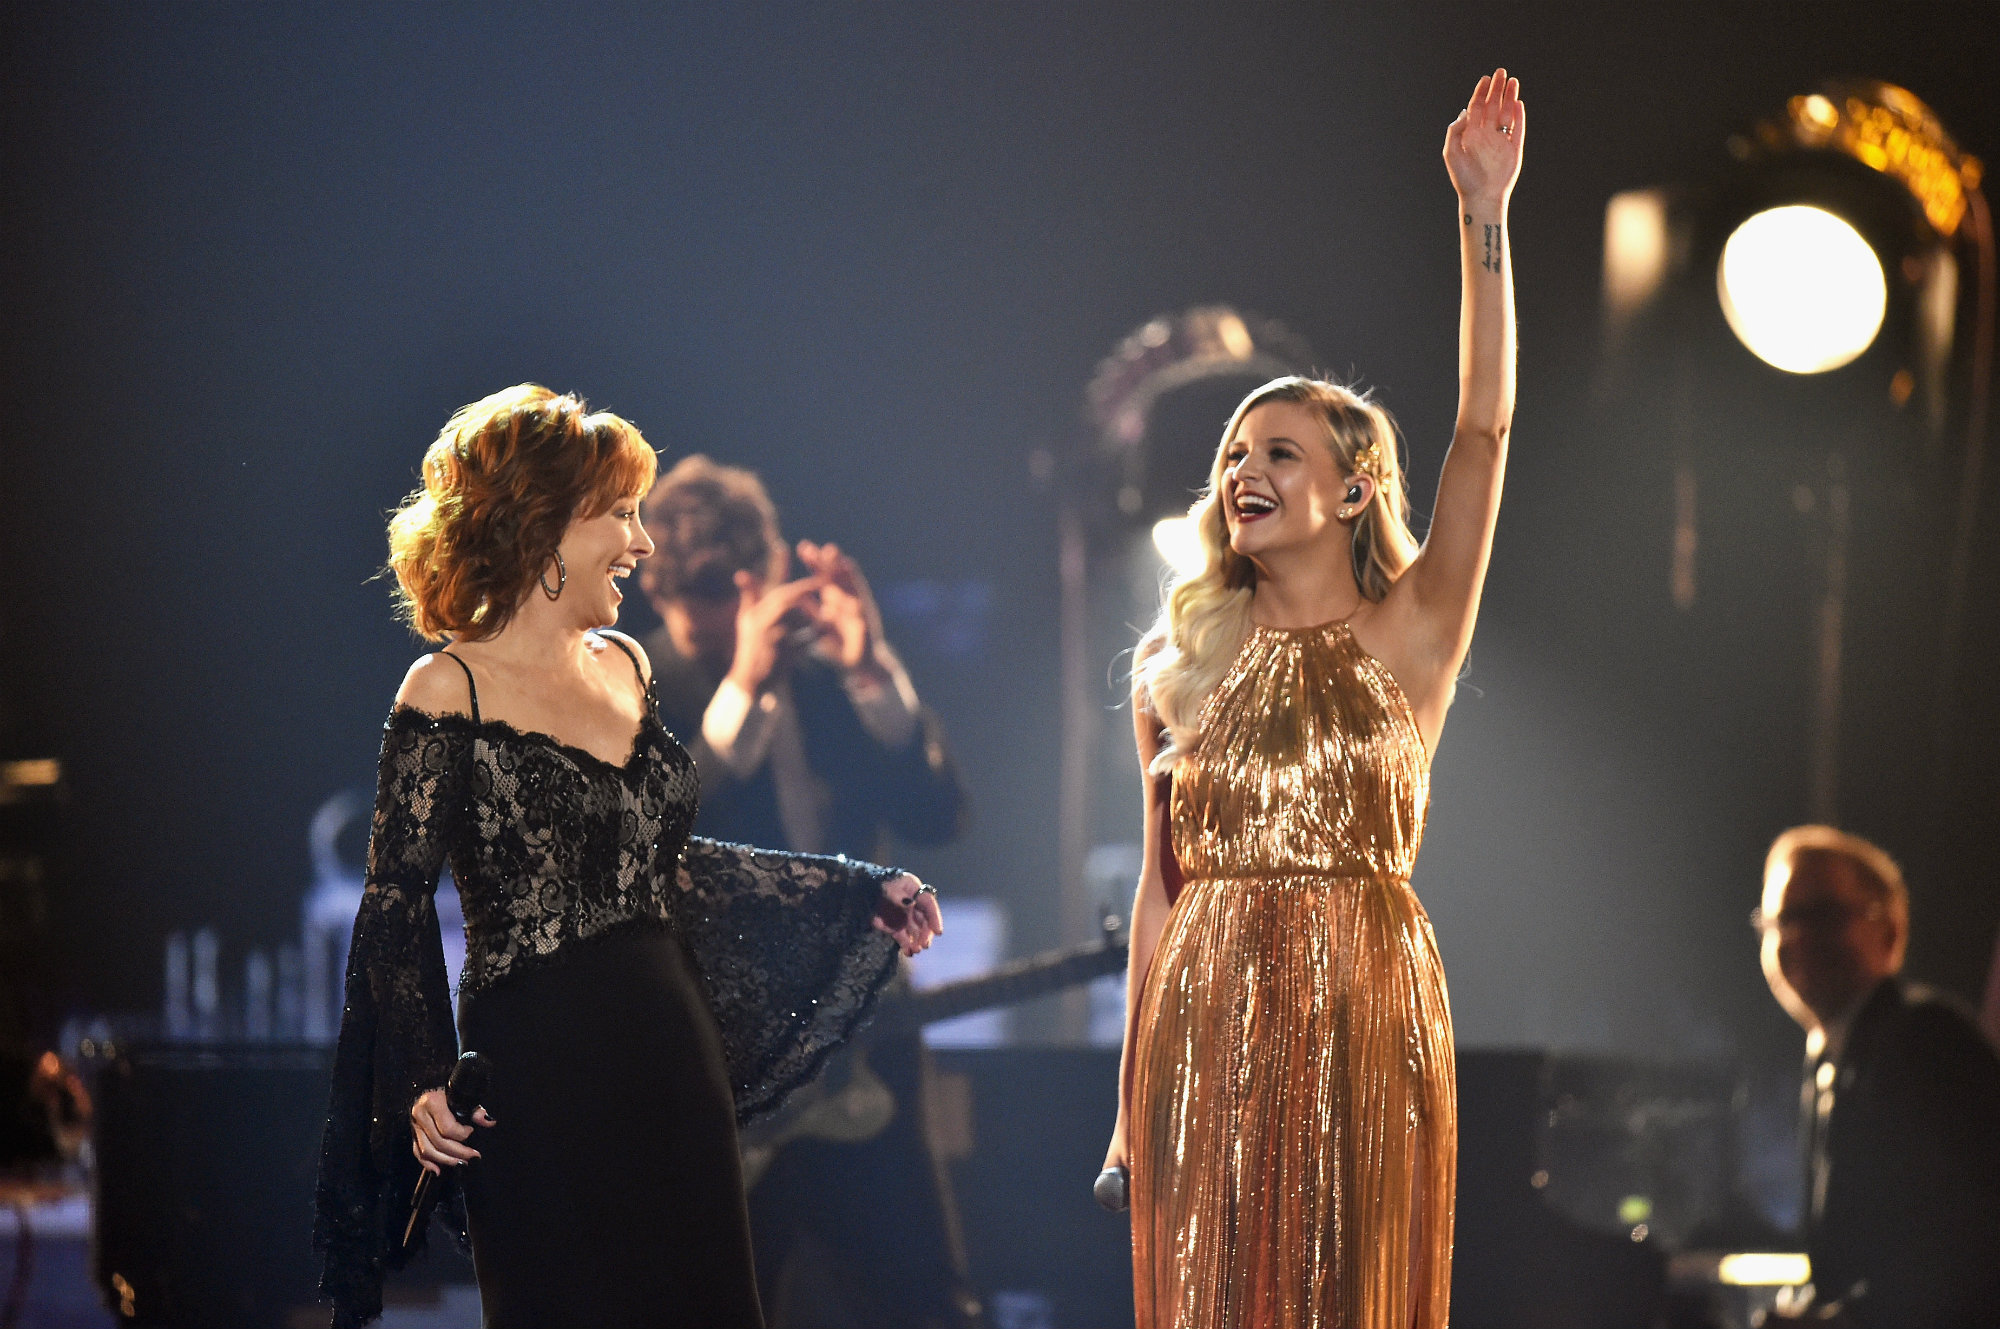 Reba and Kelsea Ballerini LEAD